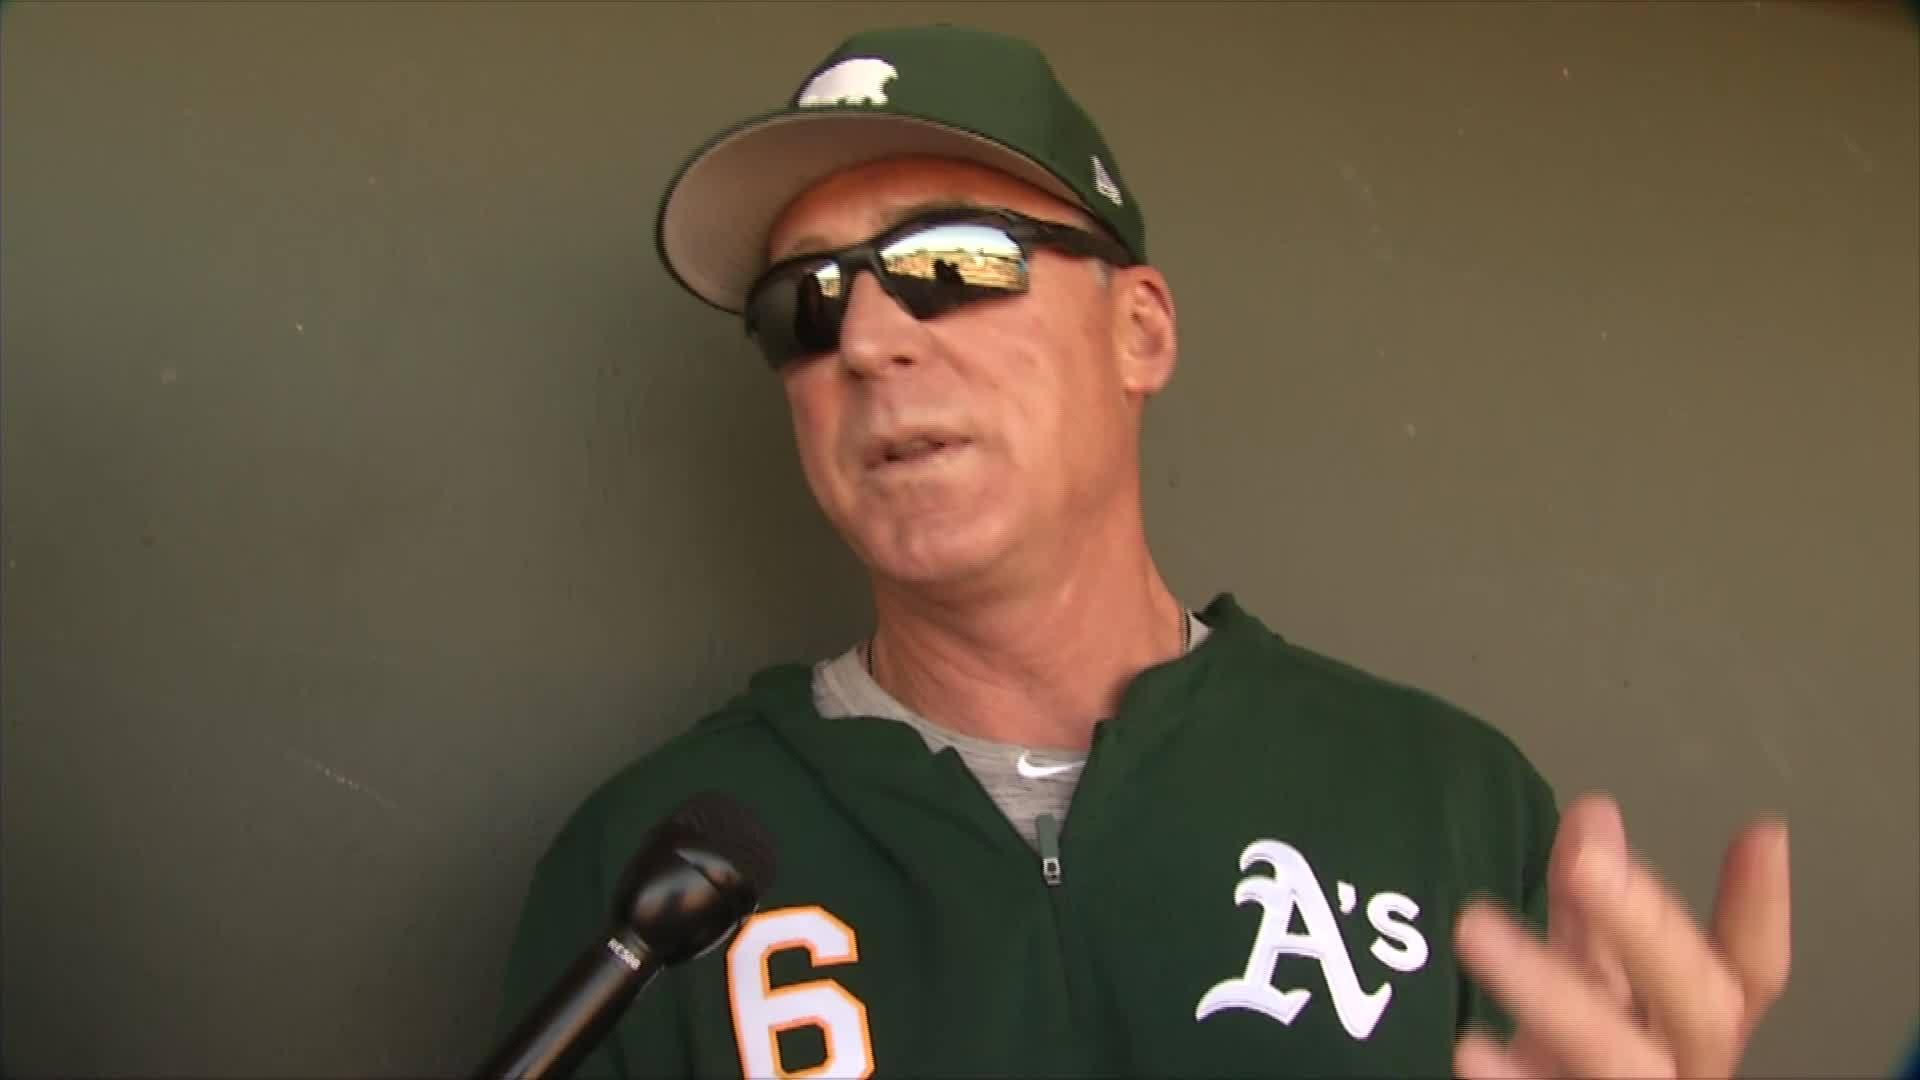 A's Bob Melvin on Manager of the Year award